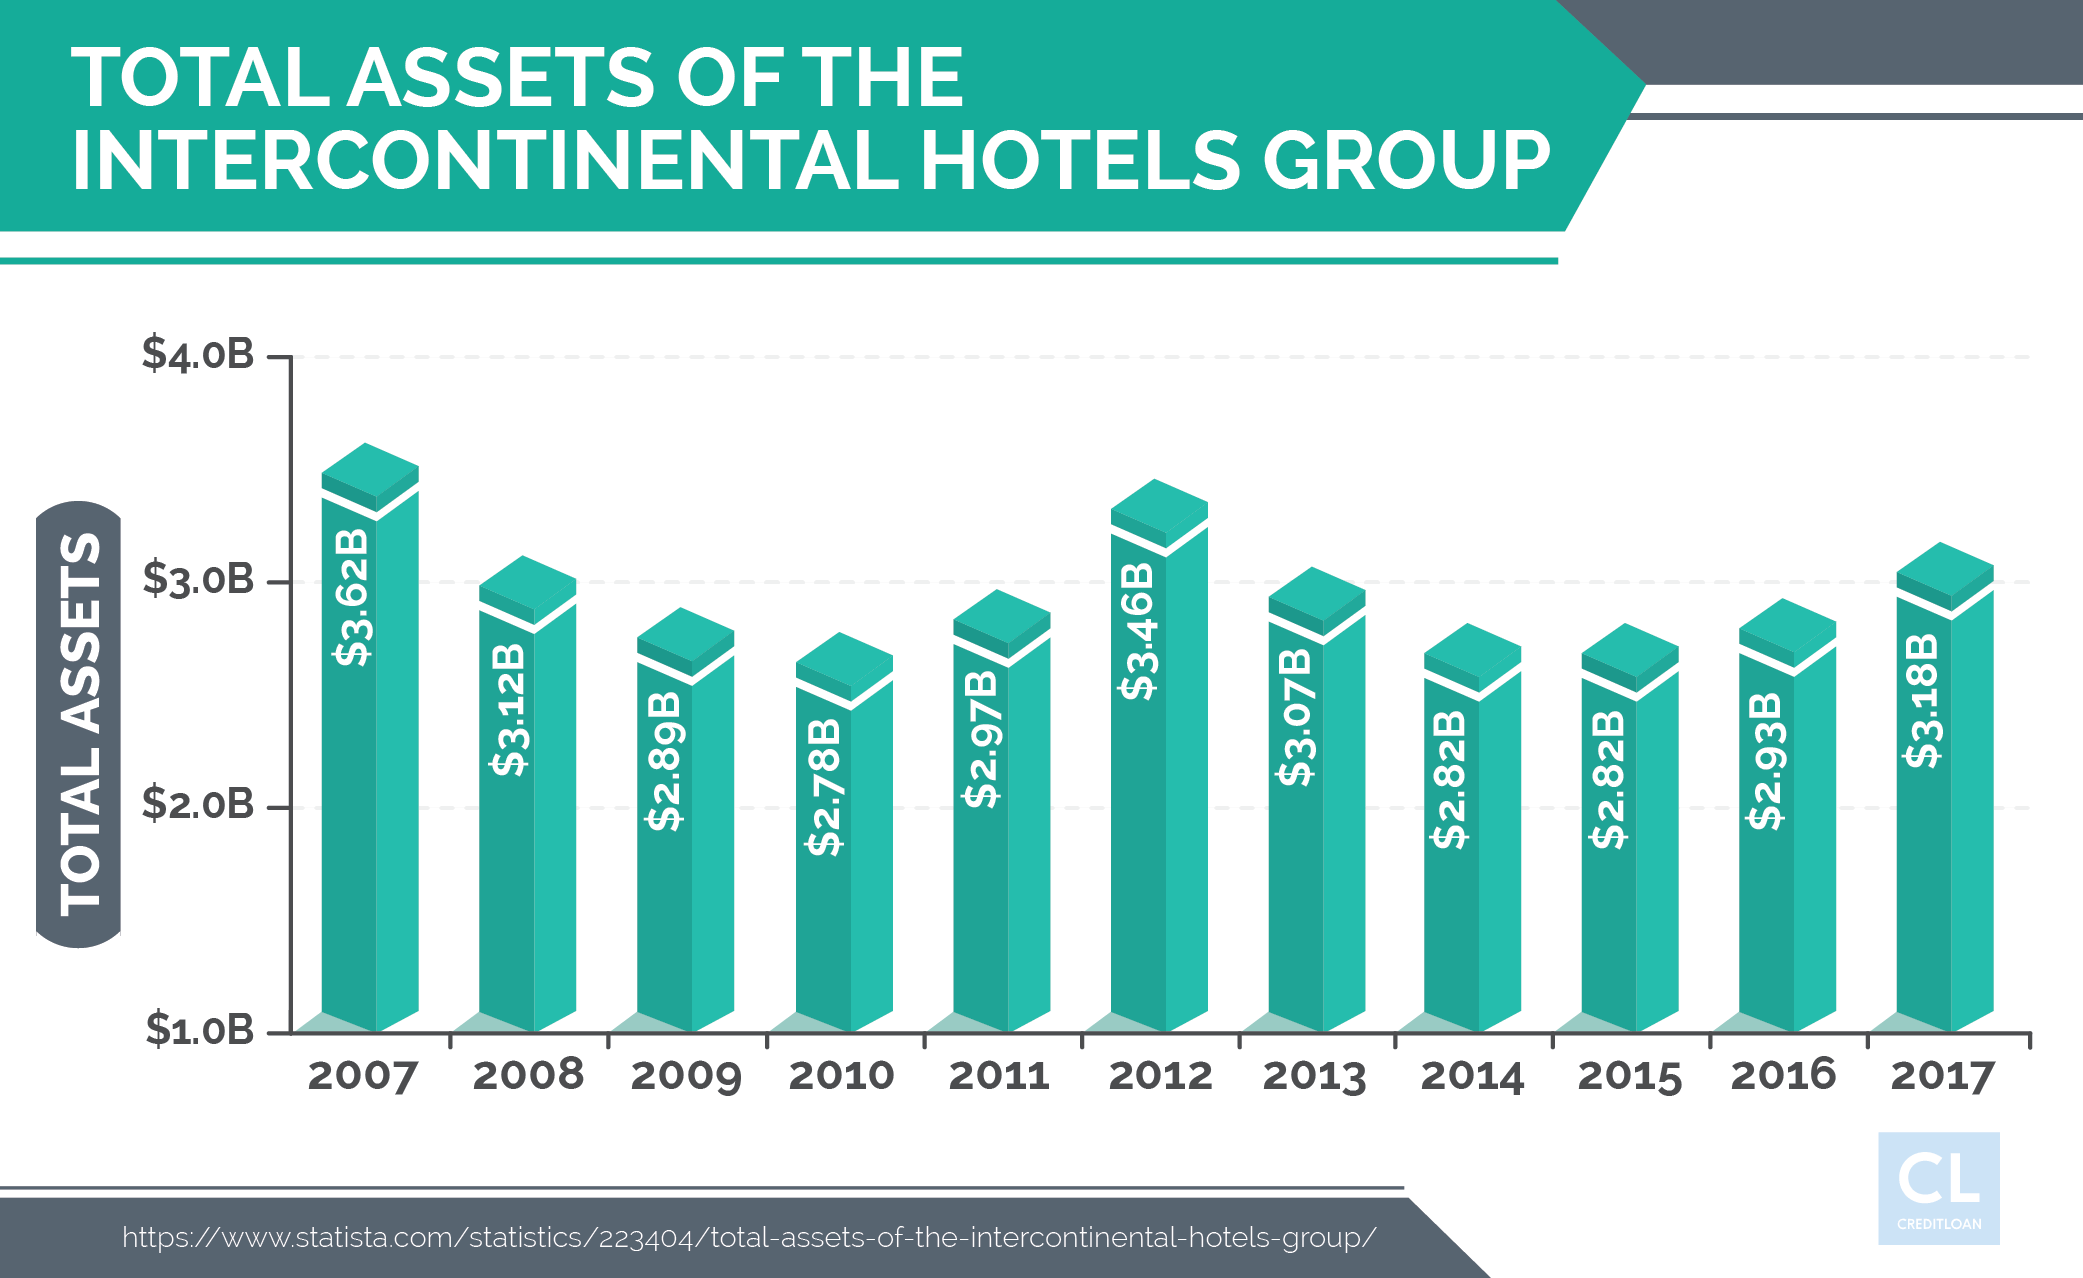 Total Assets of the Intercontinental Hotels Group